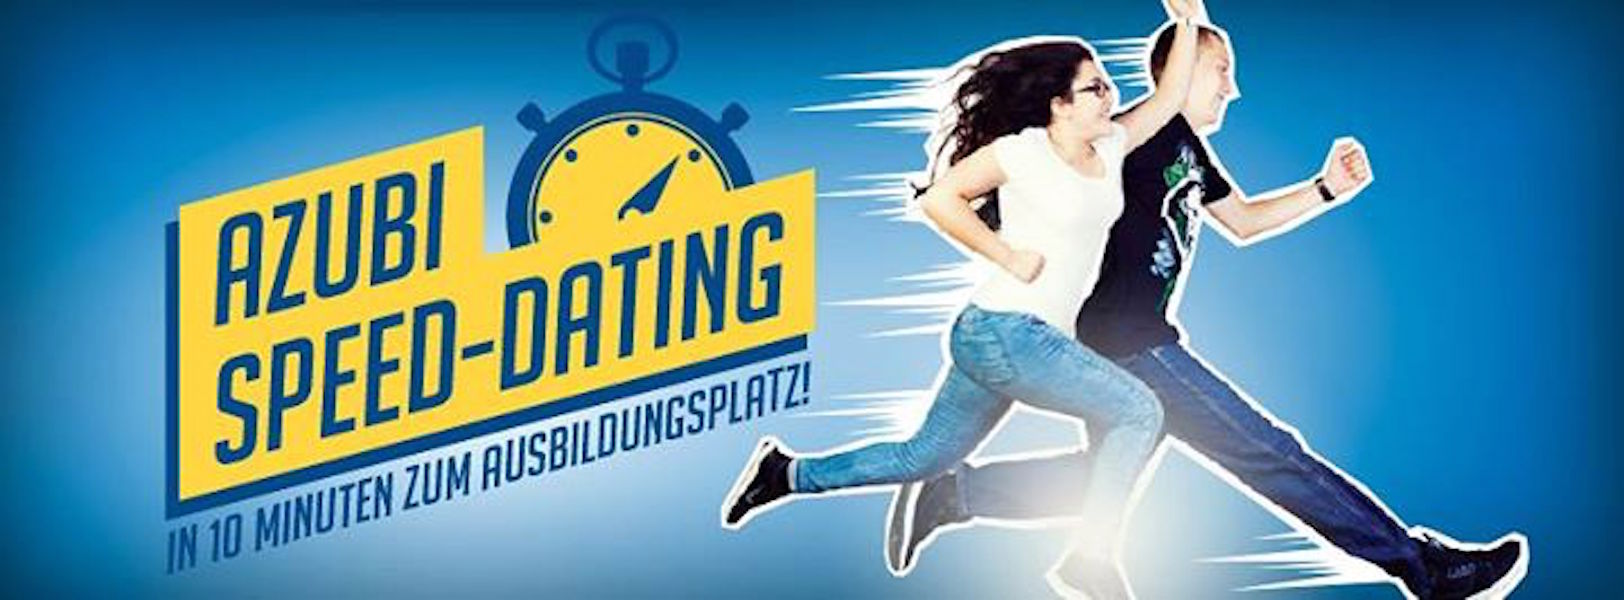 Speed dating ausbildung kassel